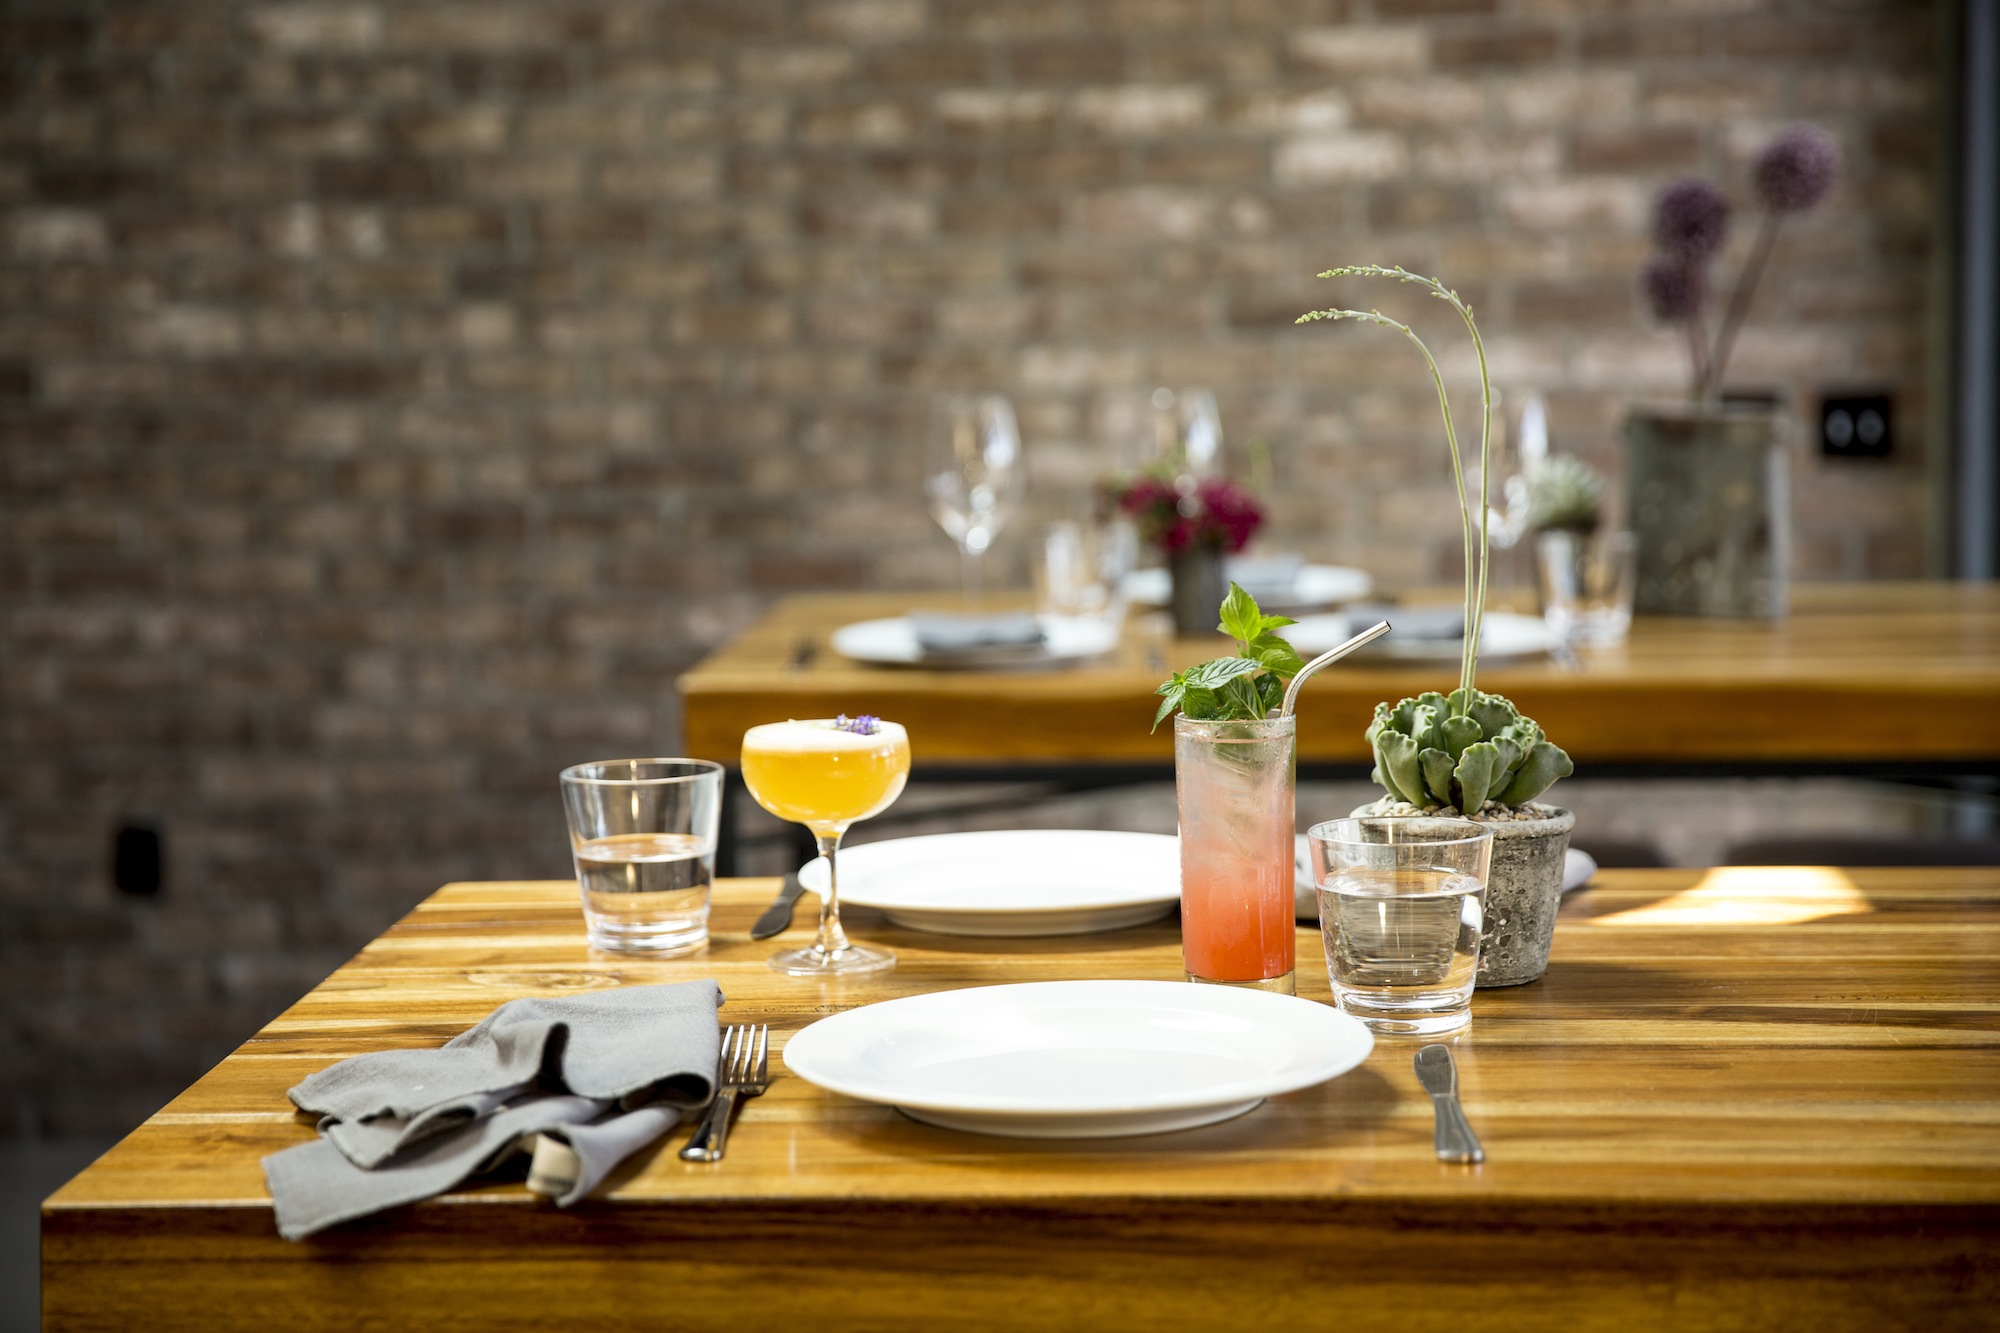 Where-To-eat-Local-Kitchen-3